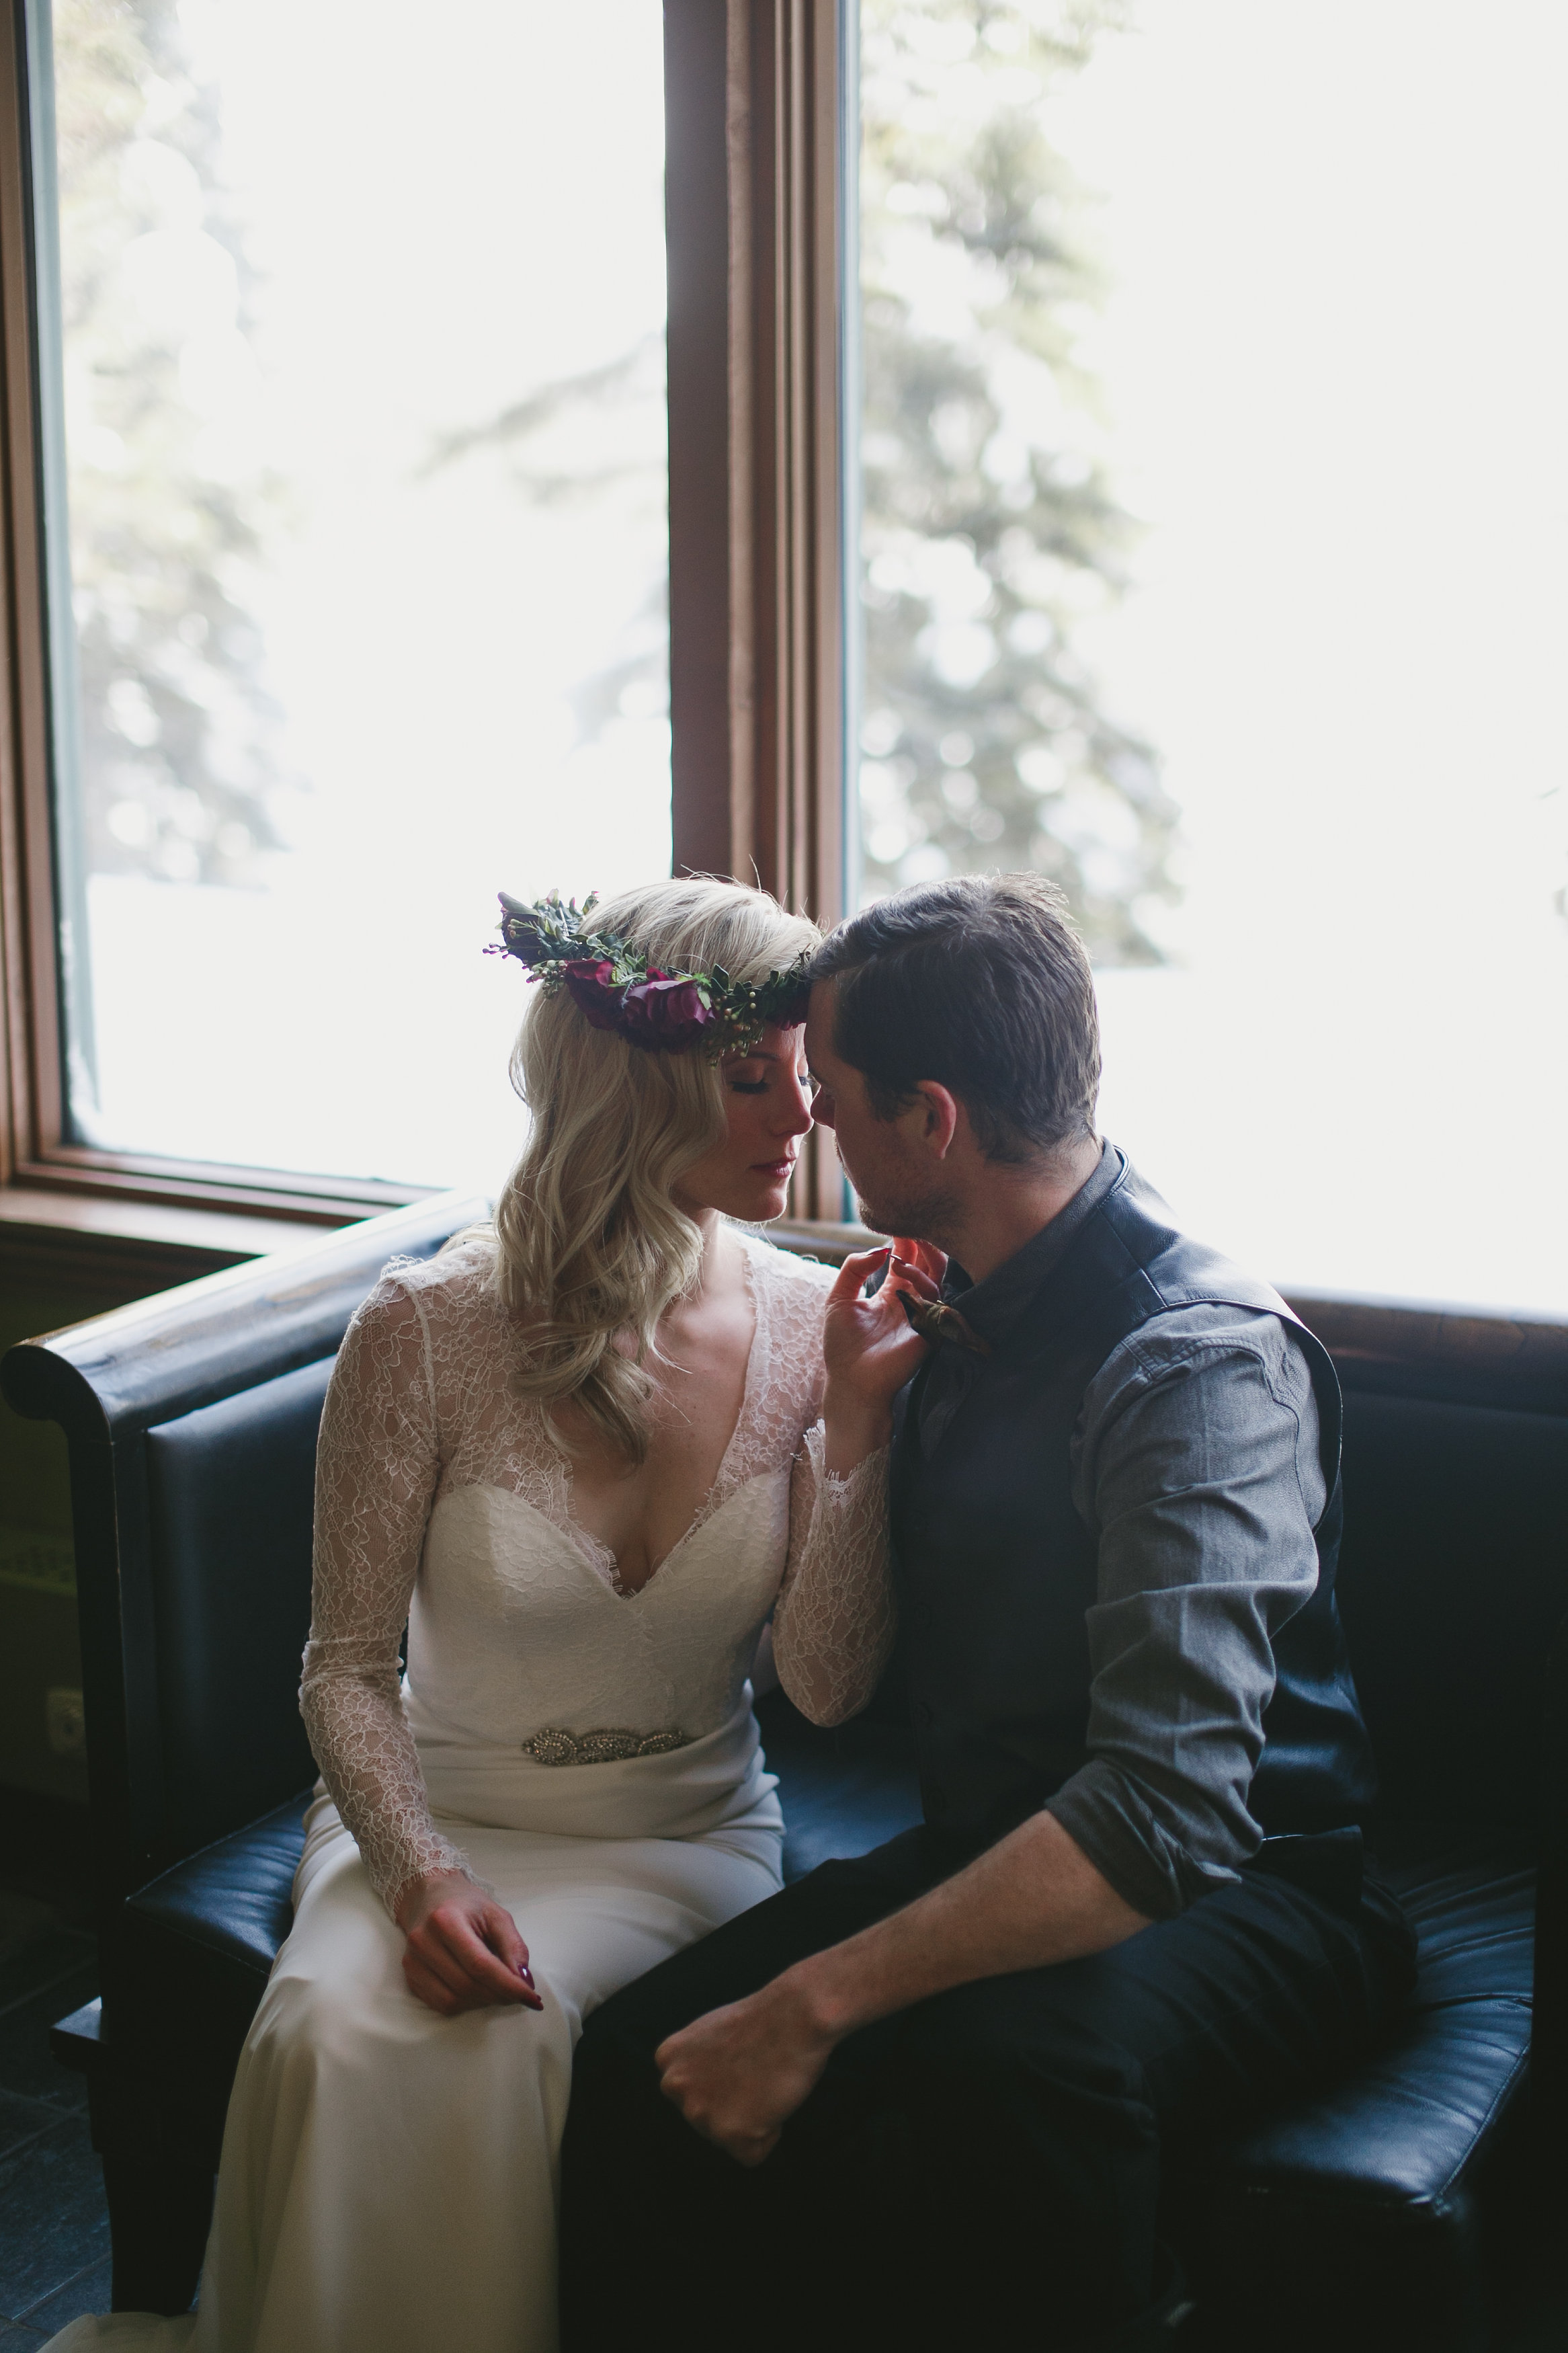 J-EmeraldLake-RockyMountainWedding-Lolo&Noa-1.jpg